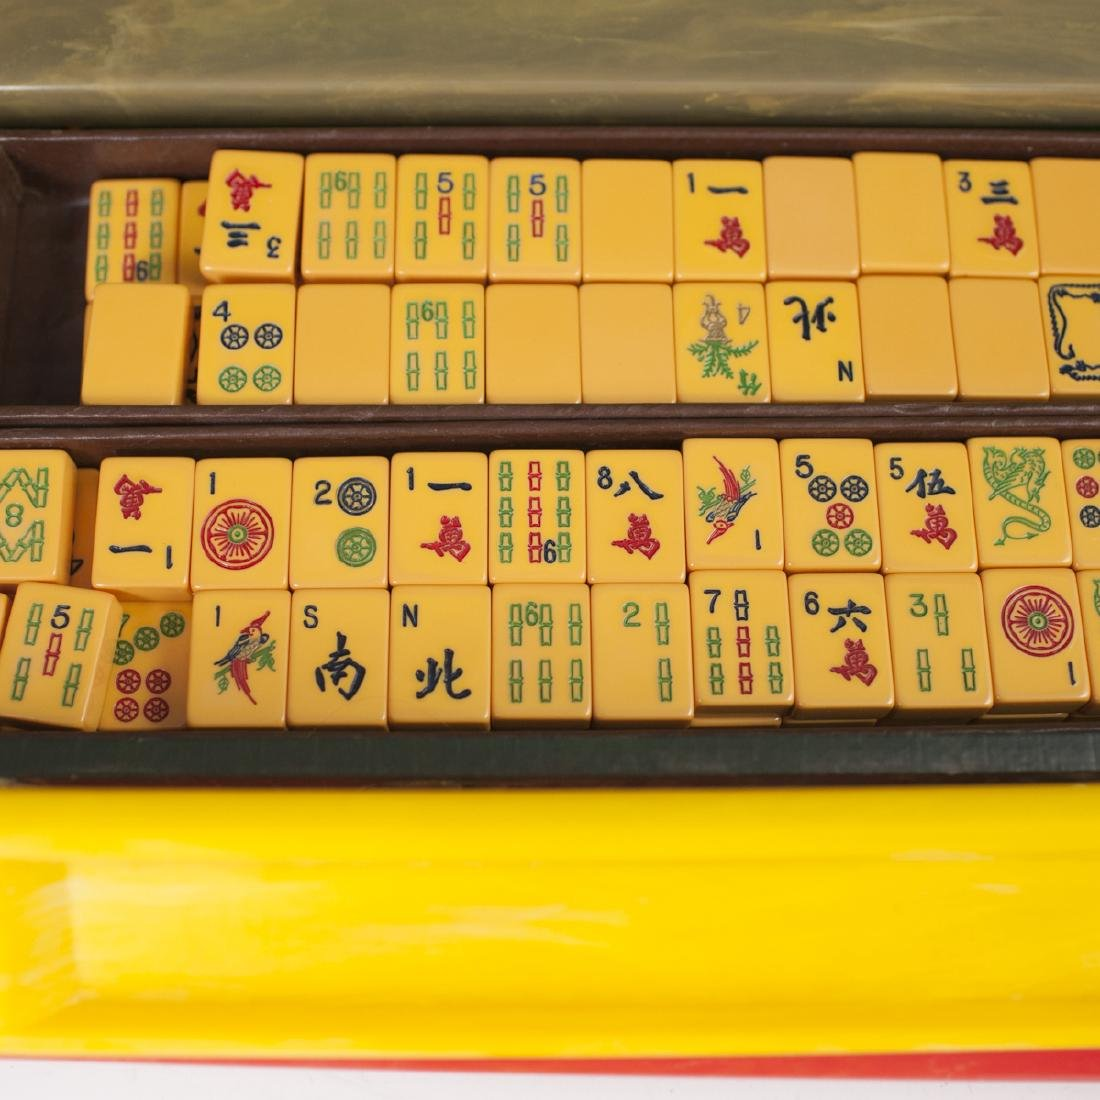 Antique Royal Depth Control Catalin Mahjong Set - 3